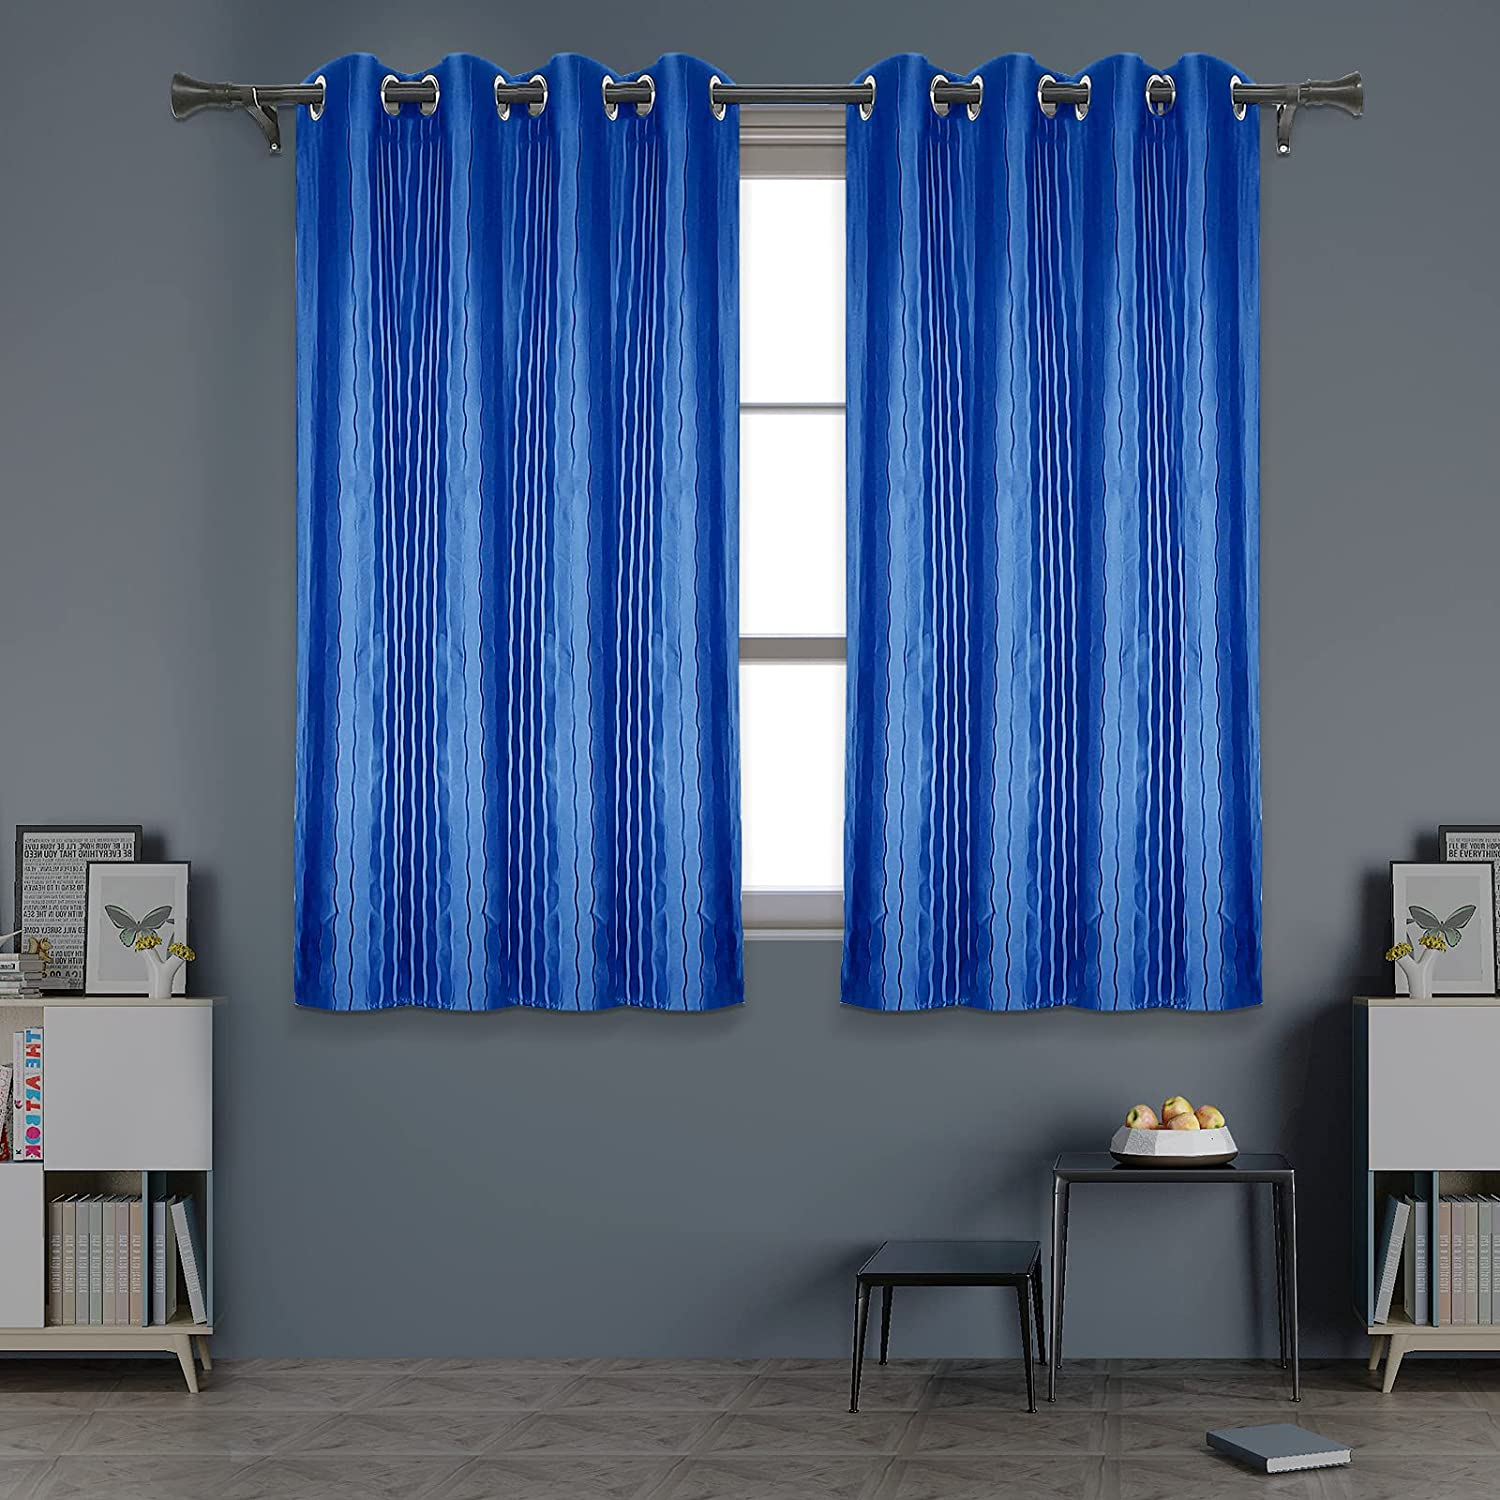 Blue Blackout Curtains with Wave Line Text Geometric 入荷予定 Drapes 情熱セール